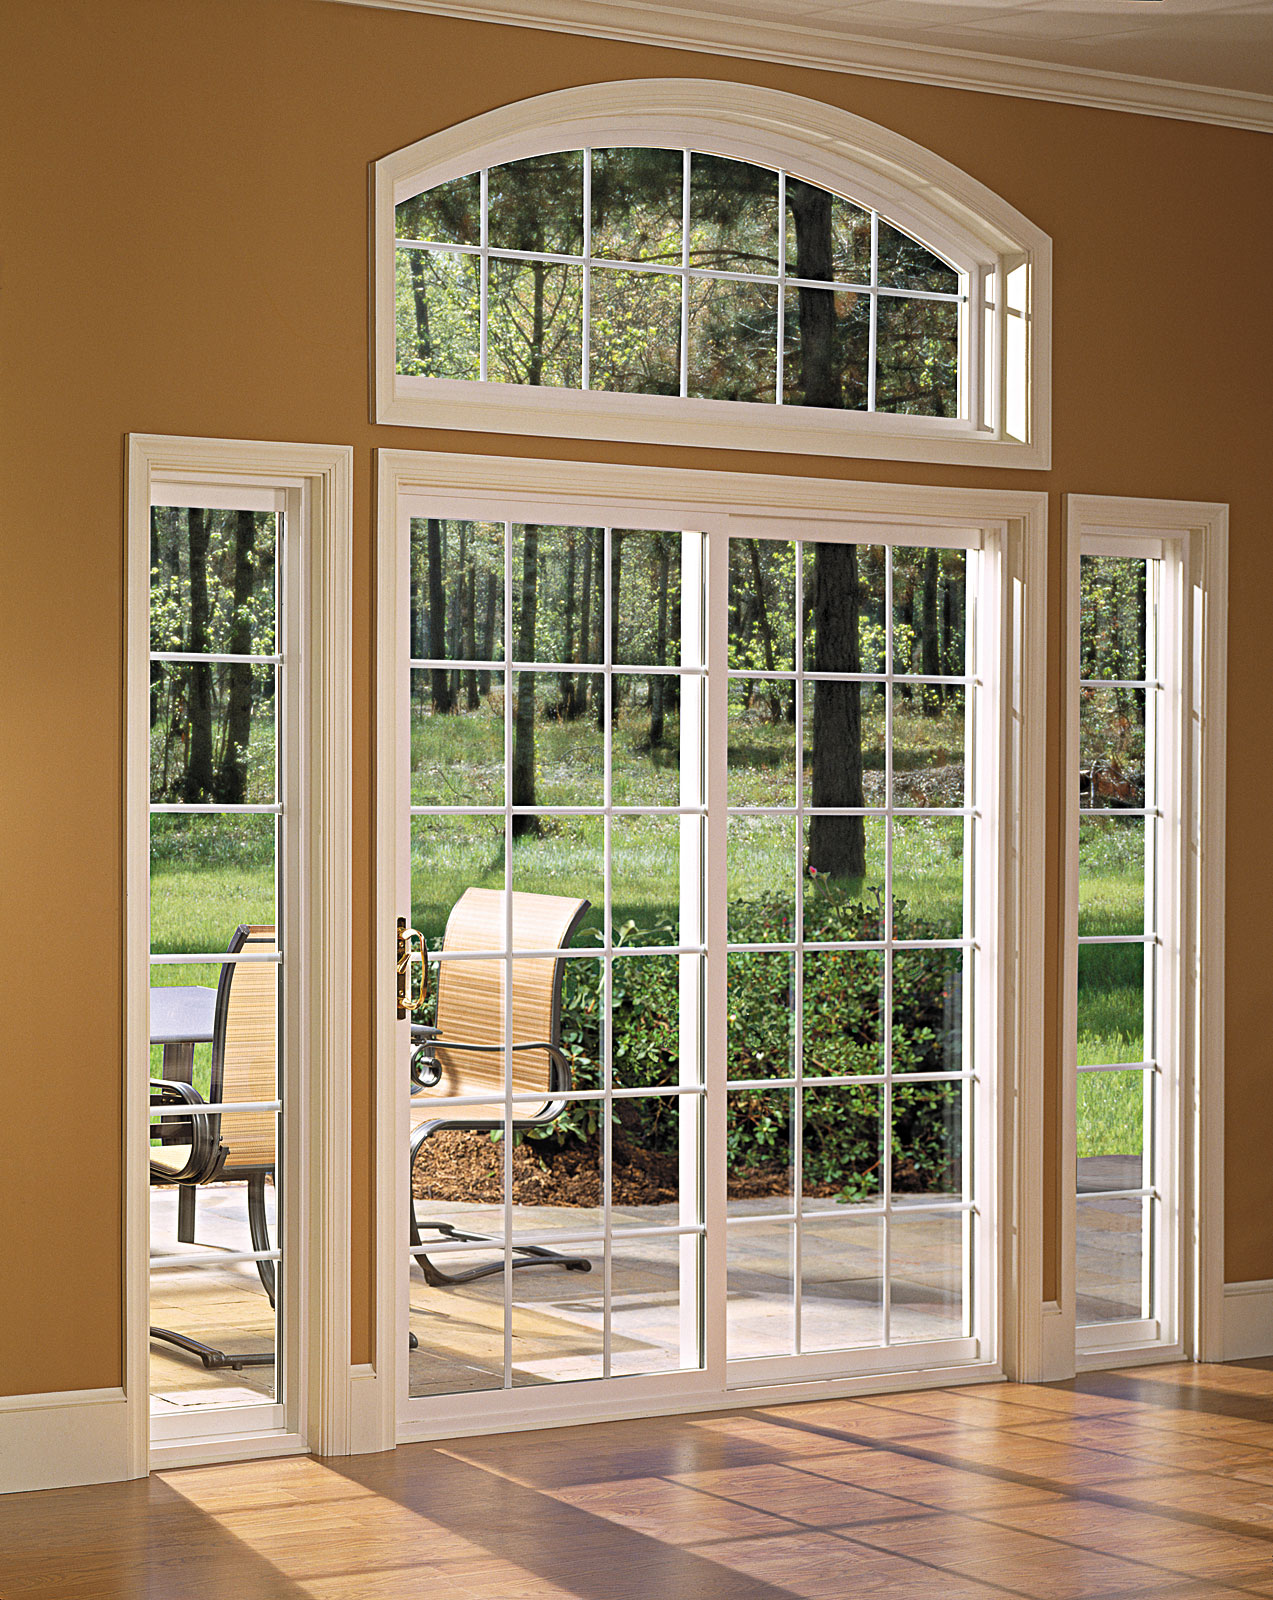 performance patio performance patio 3 & Patio Doors | ECO Windows \u0026 Doors